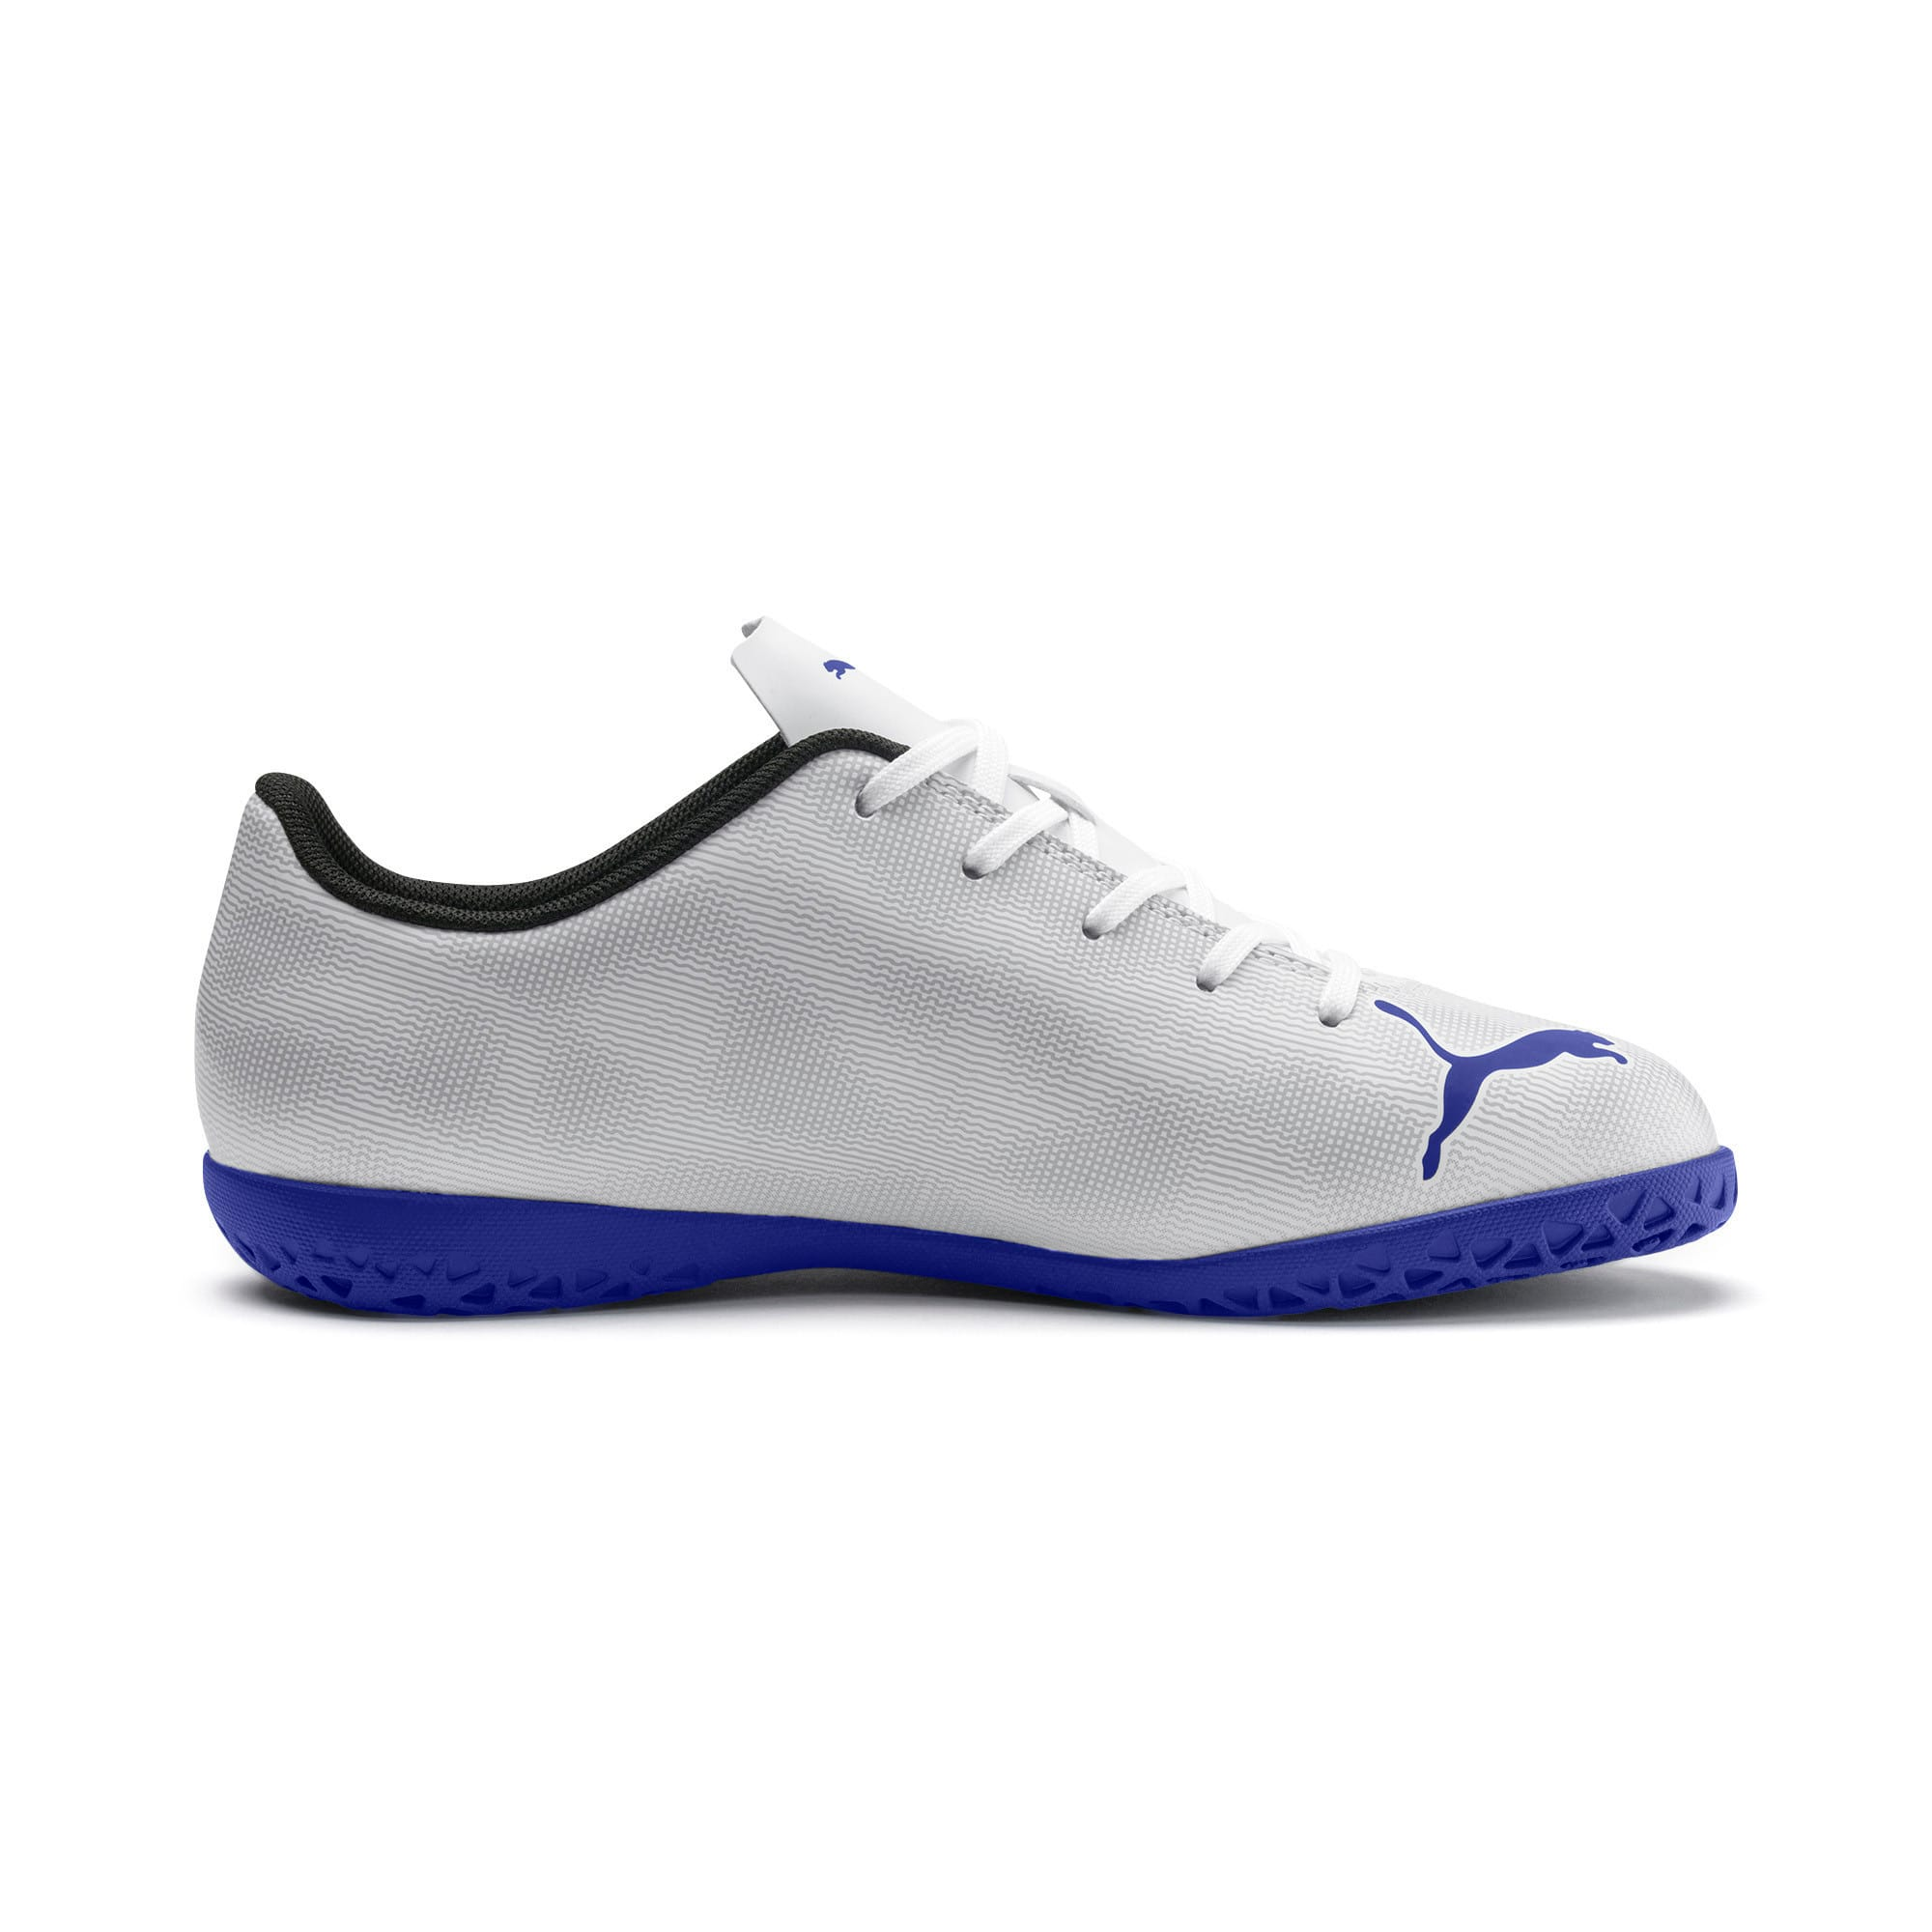 Thumbnail 3 of Rapido IT Youth Football Boots, White-Royal Blue-Light Gray, medium-IND